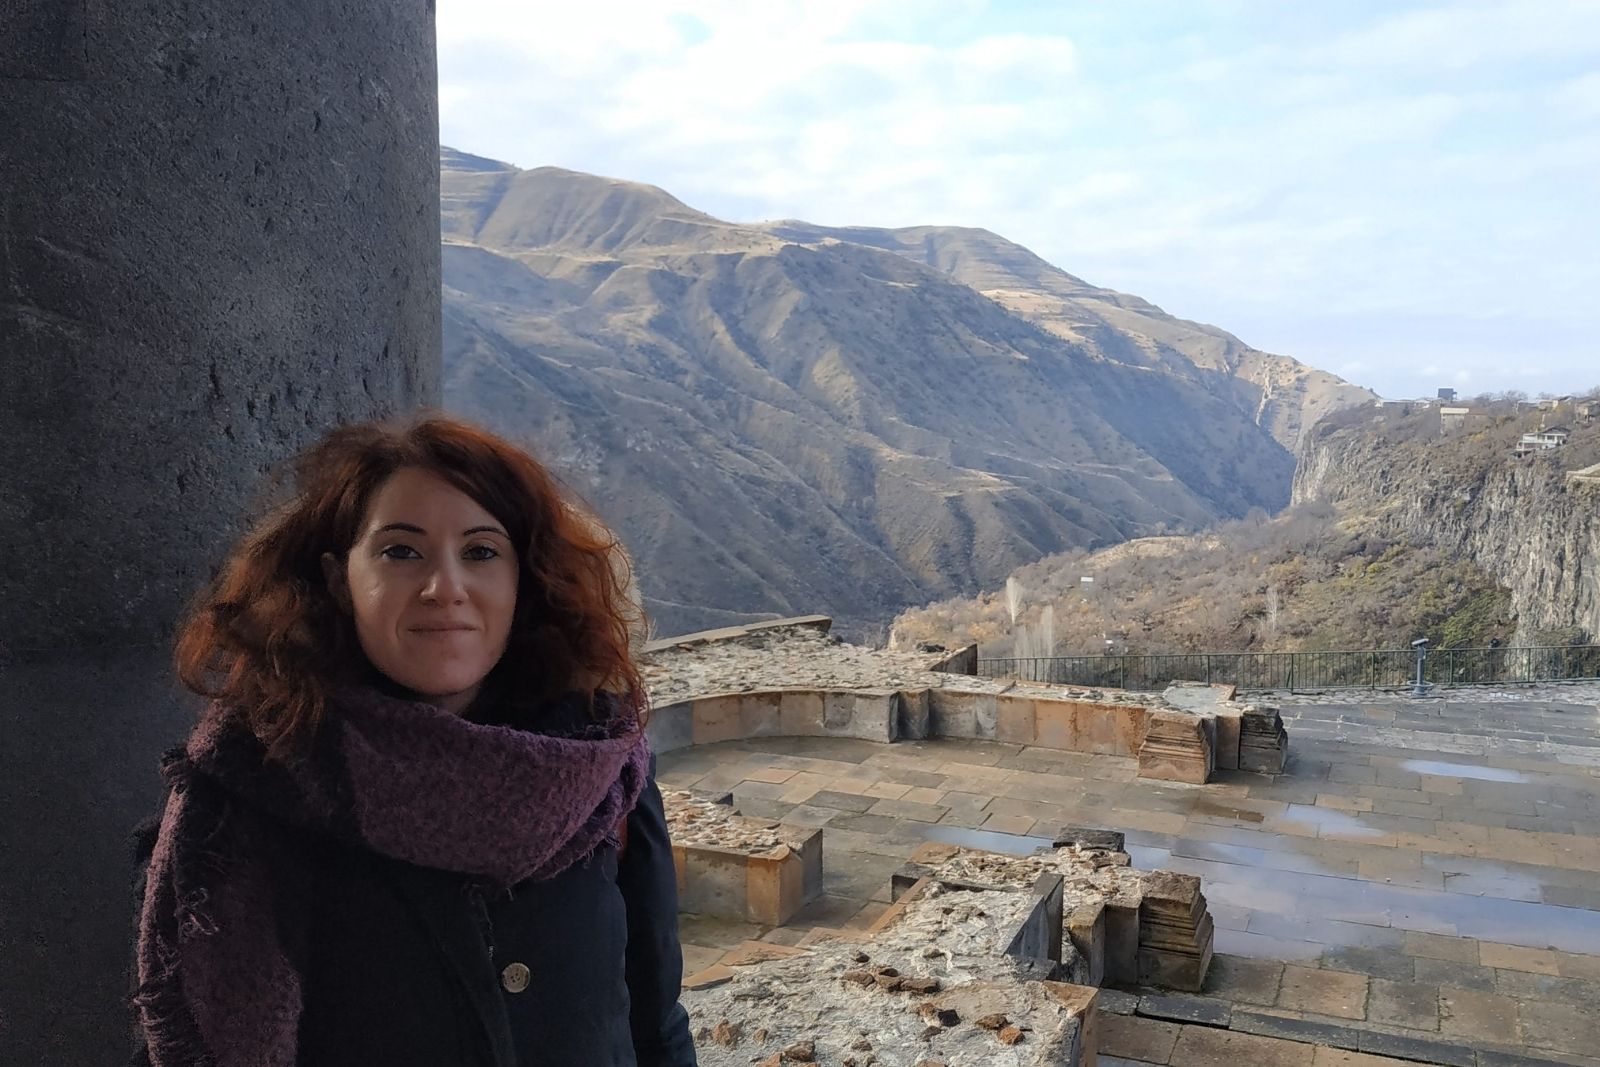 Russian language winter school 2018 participant Valentina Bernardi at Garni temple